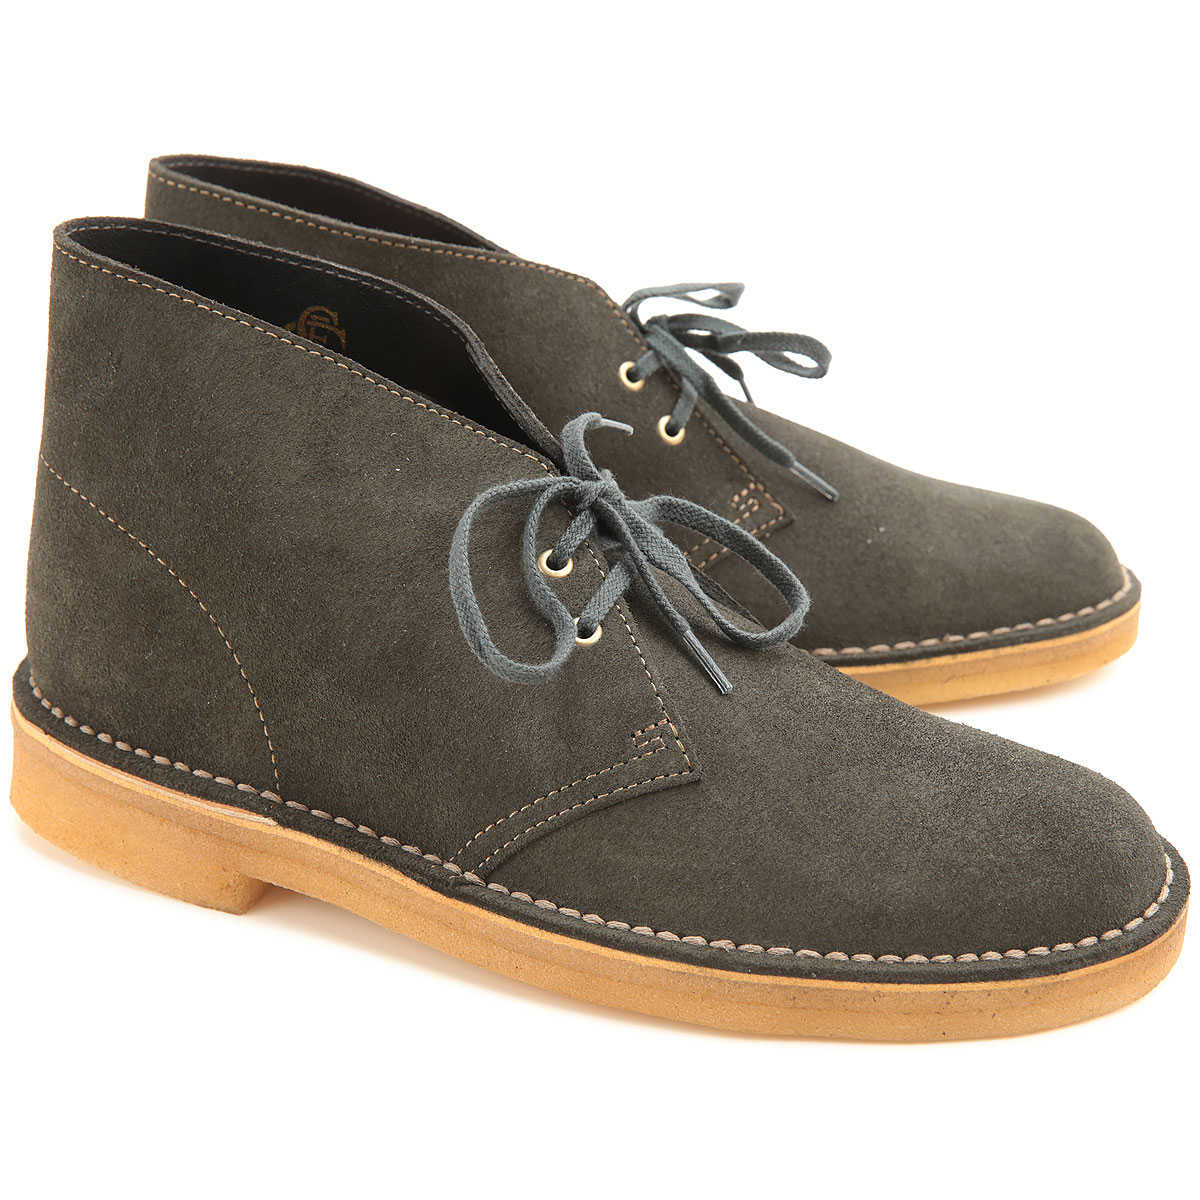 Clarks Boots for Men Booties On Sale SE - GOOFASH